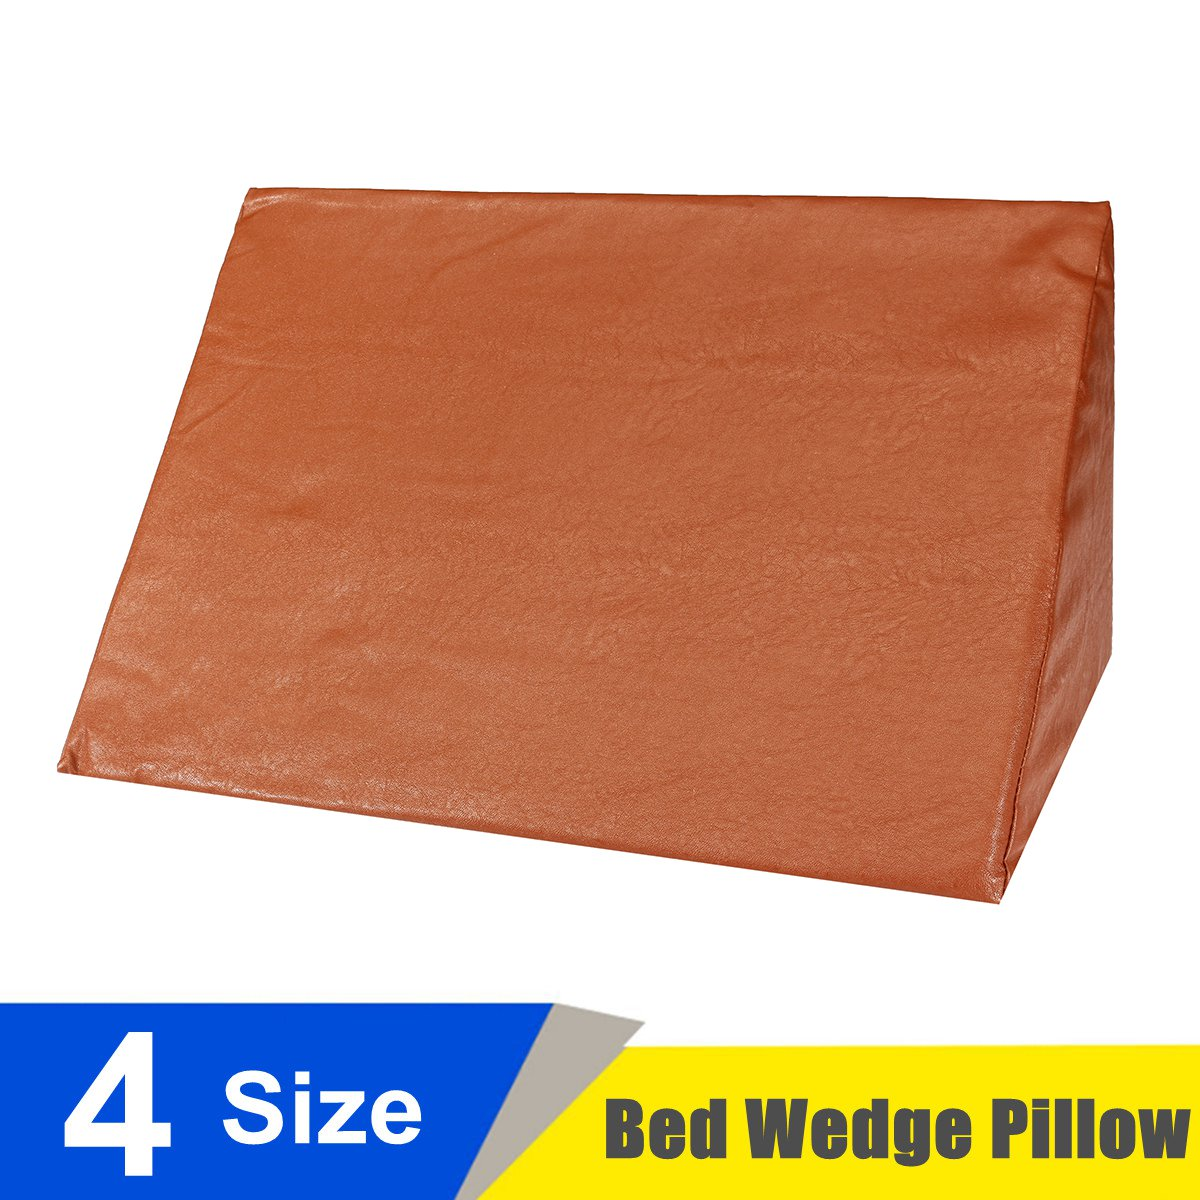 Orthopedic Acid Reflux Bed Wedge Pillow Leather Sponge Back Leg Elevation Cushion Pad Triangle Pillow Cover Brown Bedding coin purse